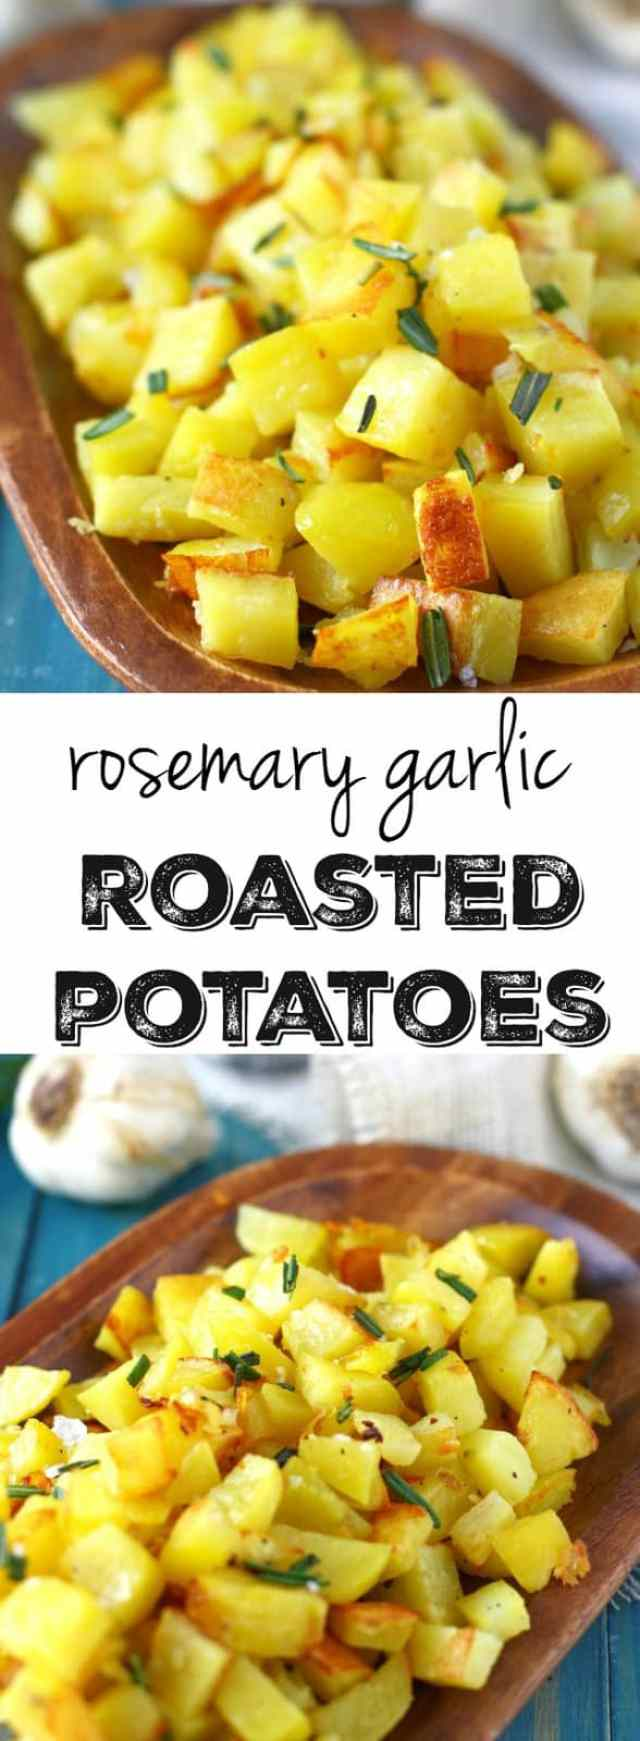 Roasted potatoes with garlic and rosemary are so delicious and very easy to make! The garlic and rosemary gives these a wonderful flavor! This dish is a real crowd pleaser.